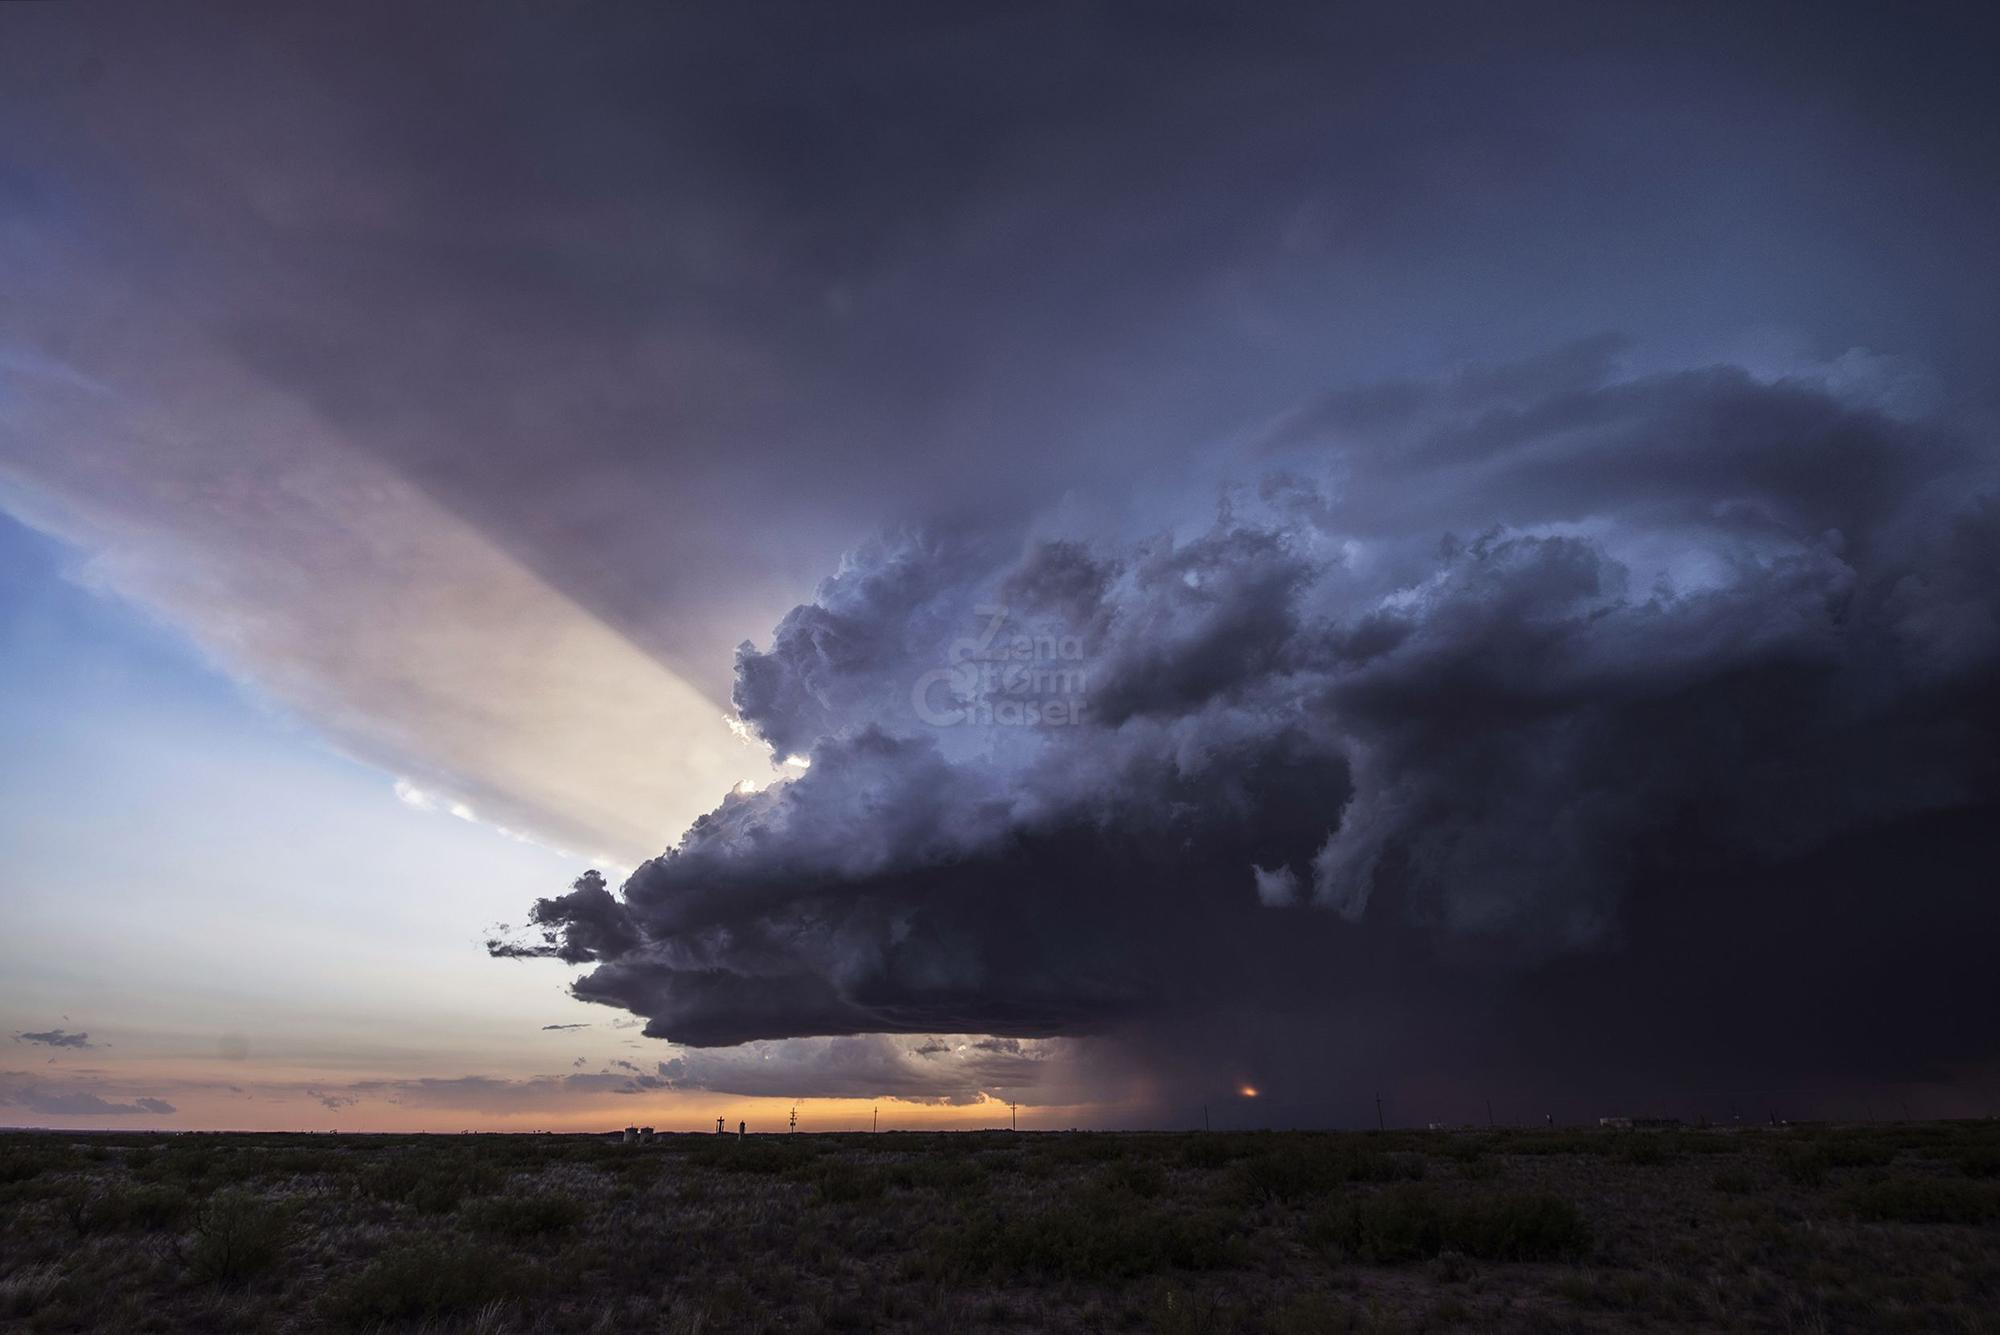 Obbs supercells New Messico – 25 may 2014